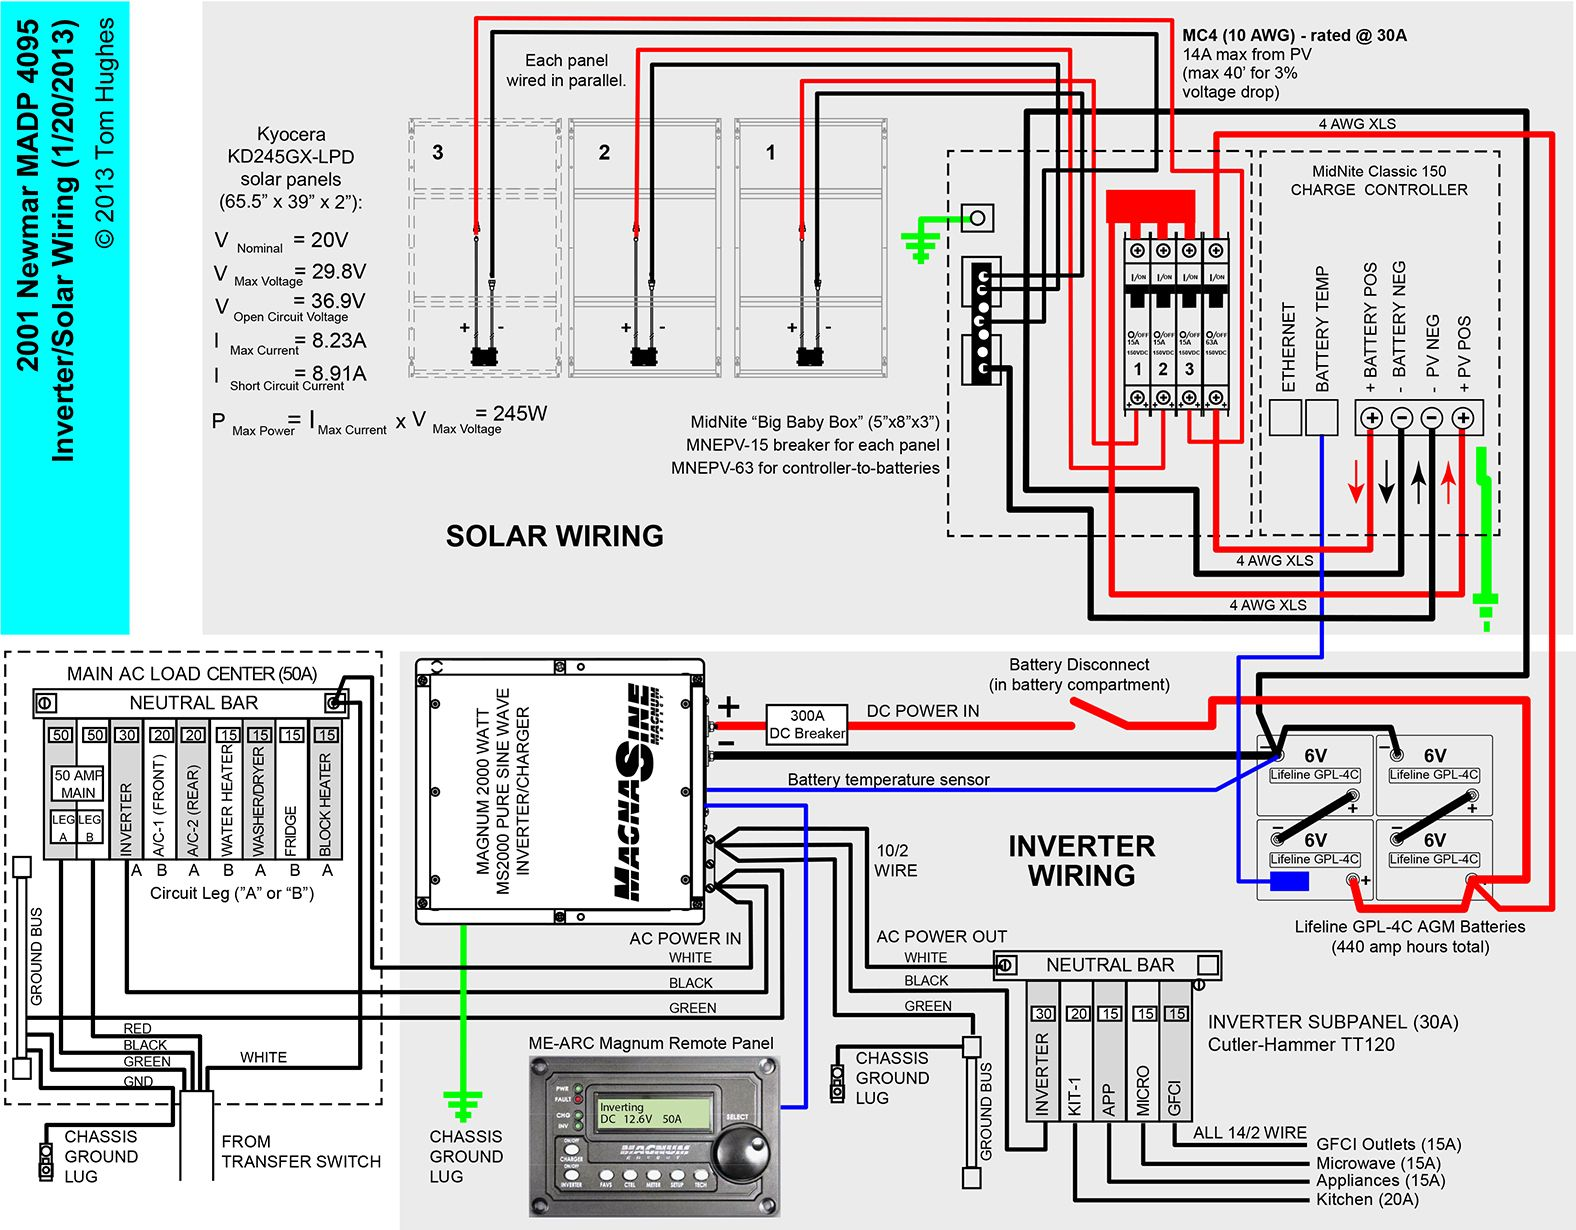 rv dual battery switch wiring diagram pioneer car stereo deh p3100 inverter